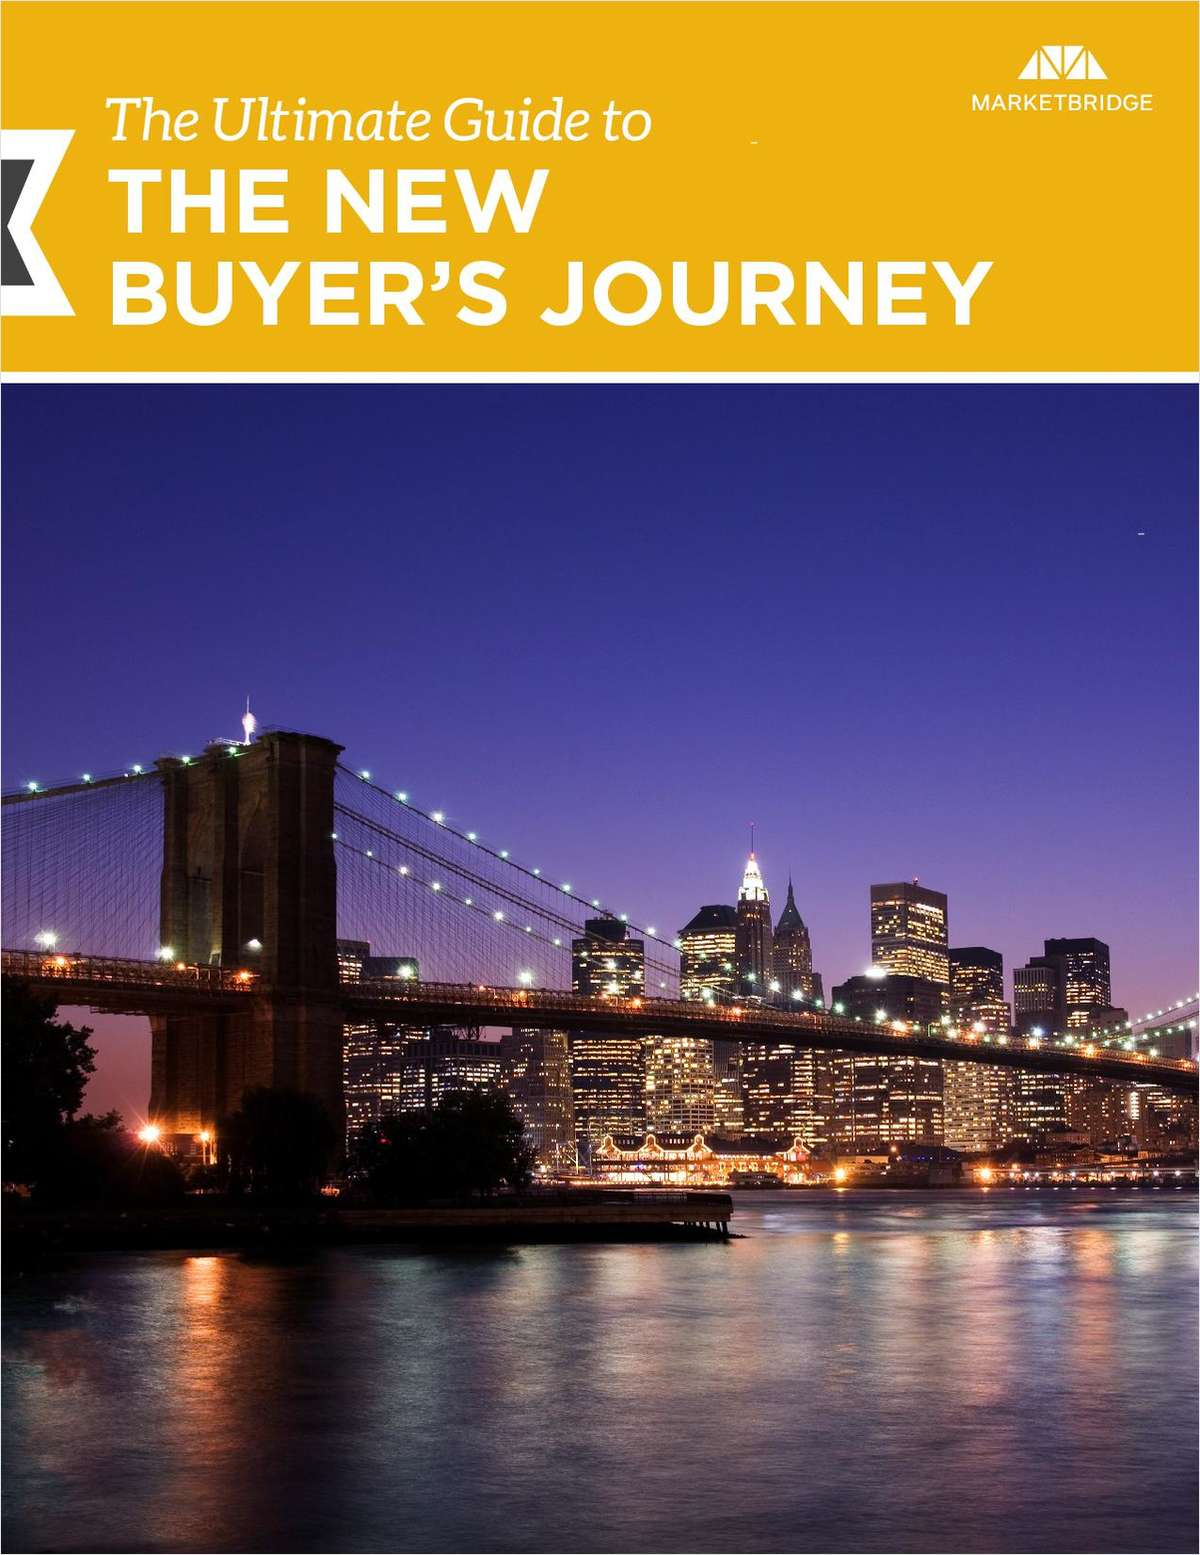 The Ultimate Guide to The New Buyer's Journey